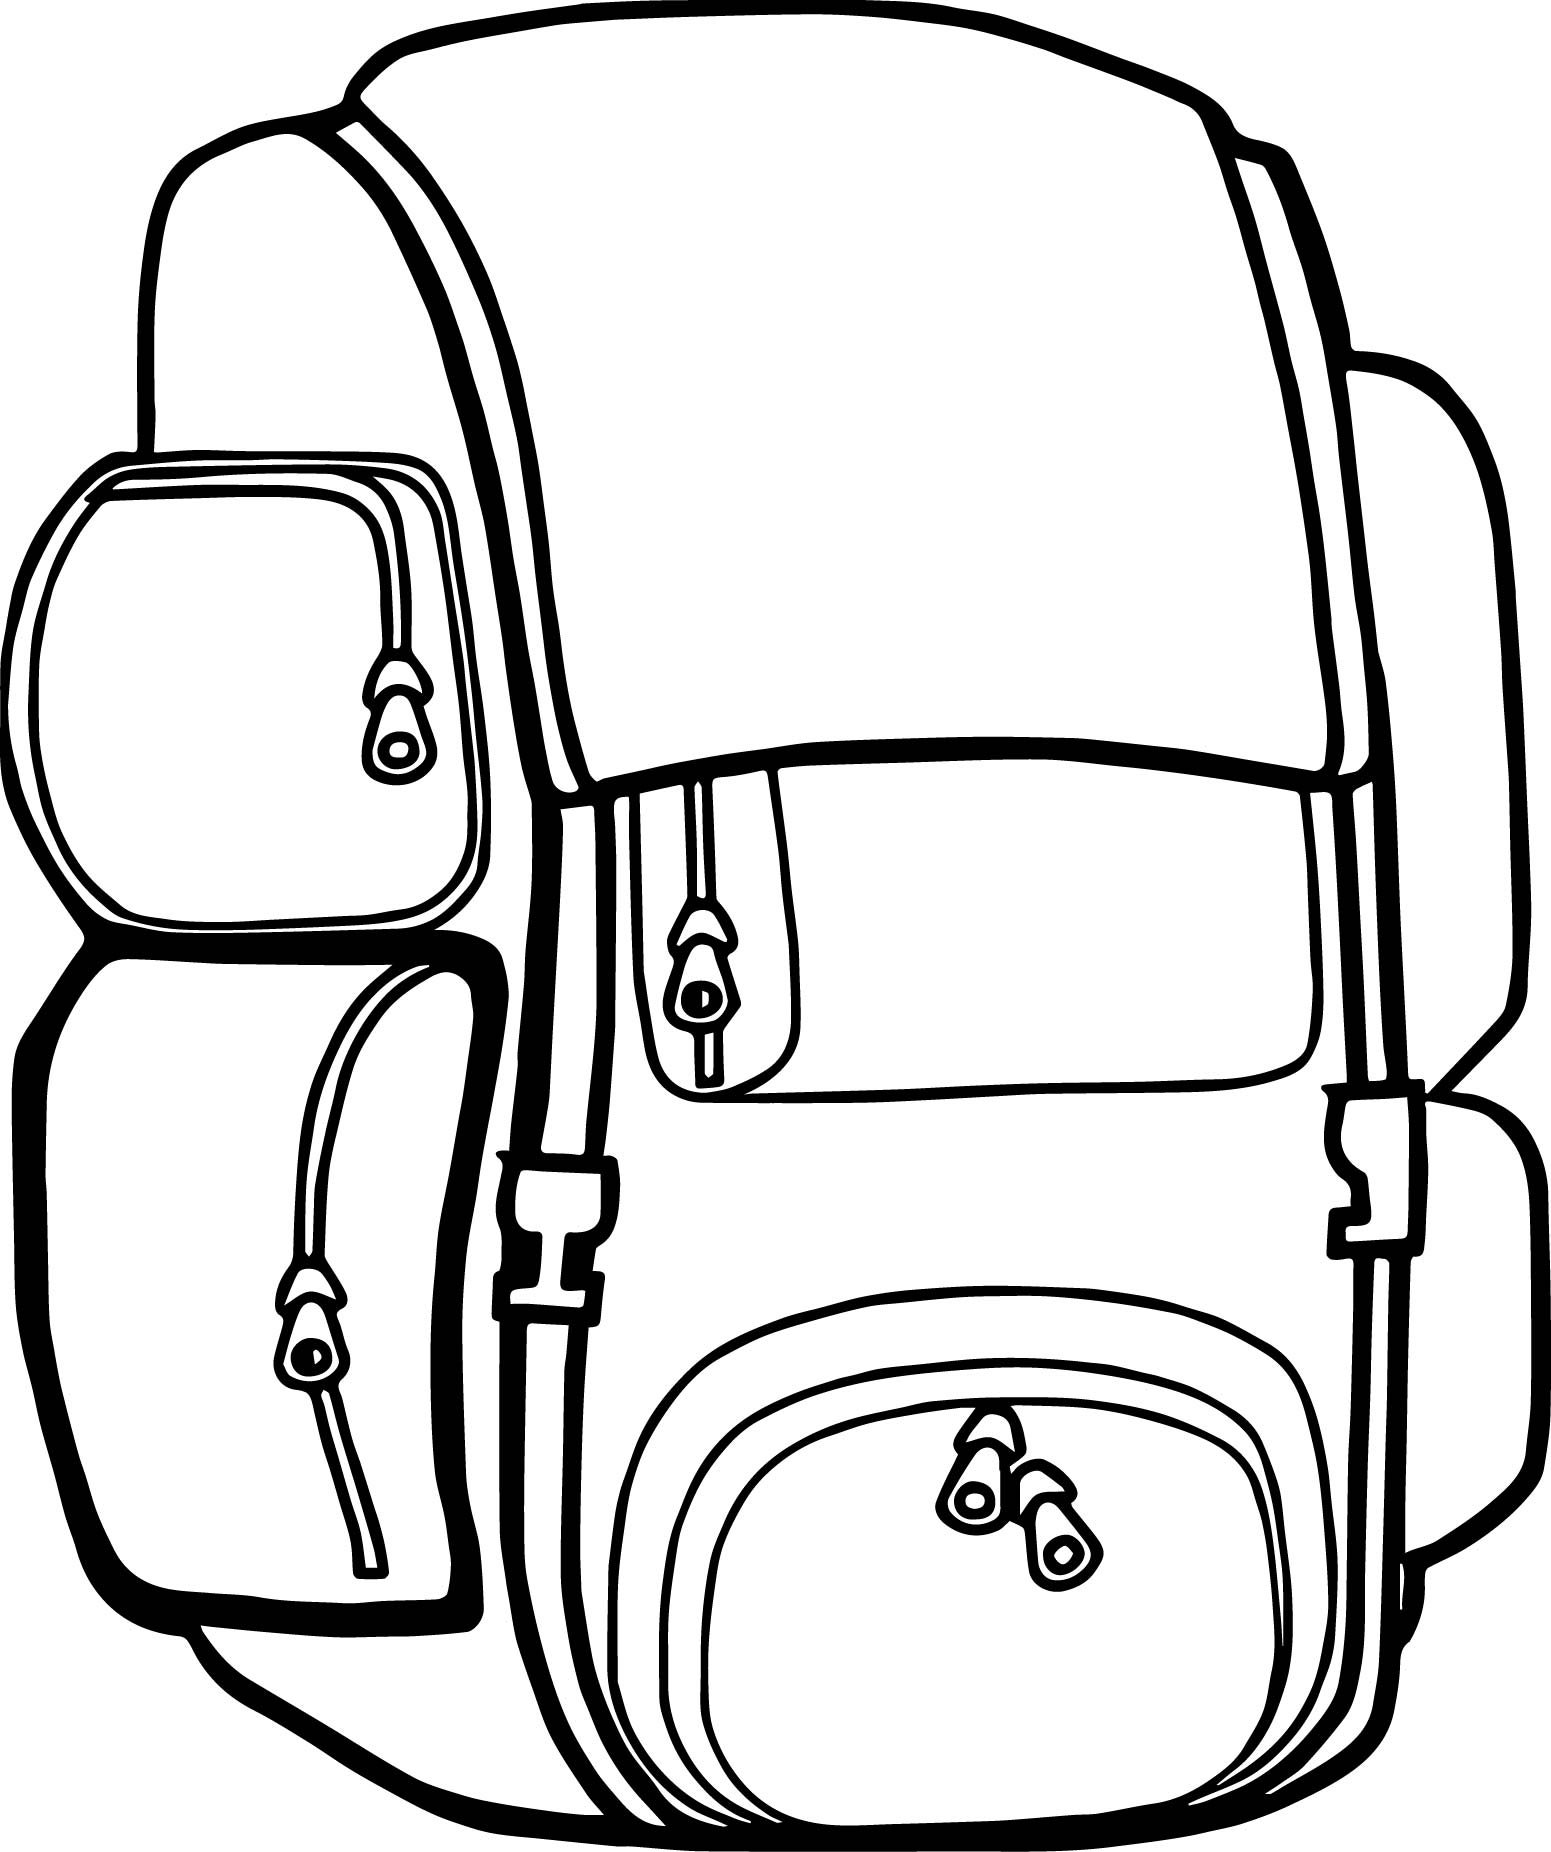 1551x1852 Backpack Clipart, Suggestions For Backpack Clipart, Download